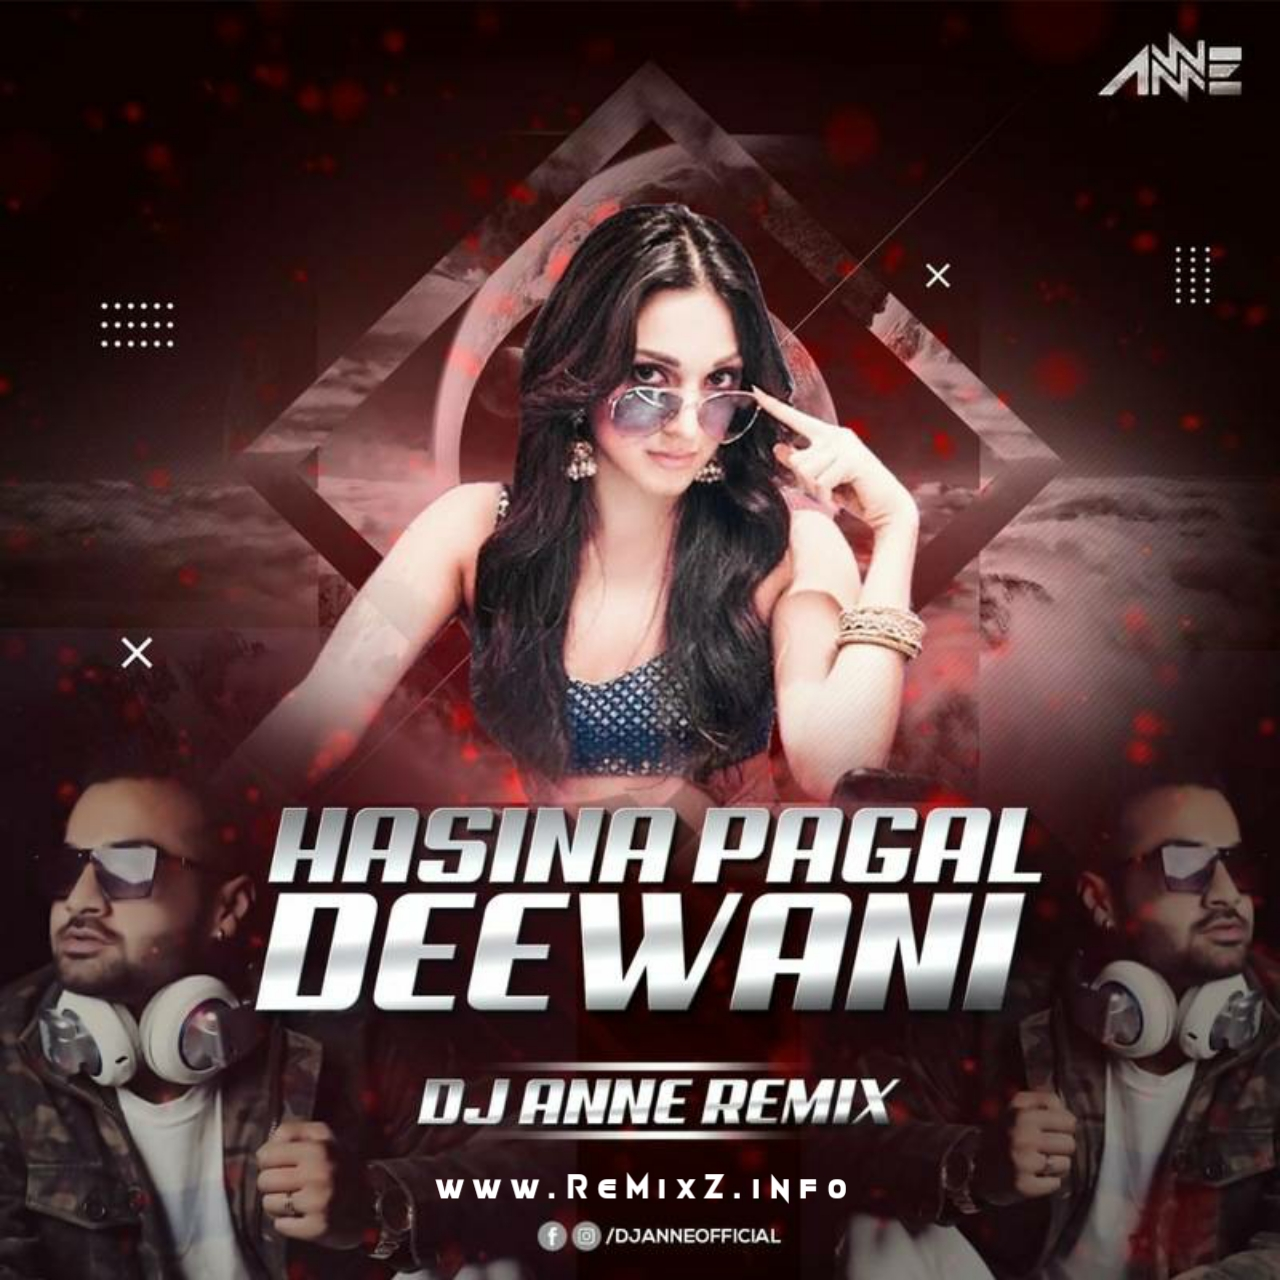 hasina-pagal-deewani-club-mix-dj-anne.jpg